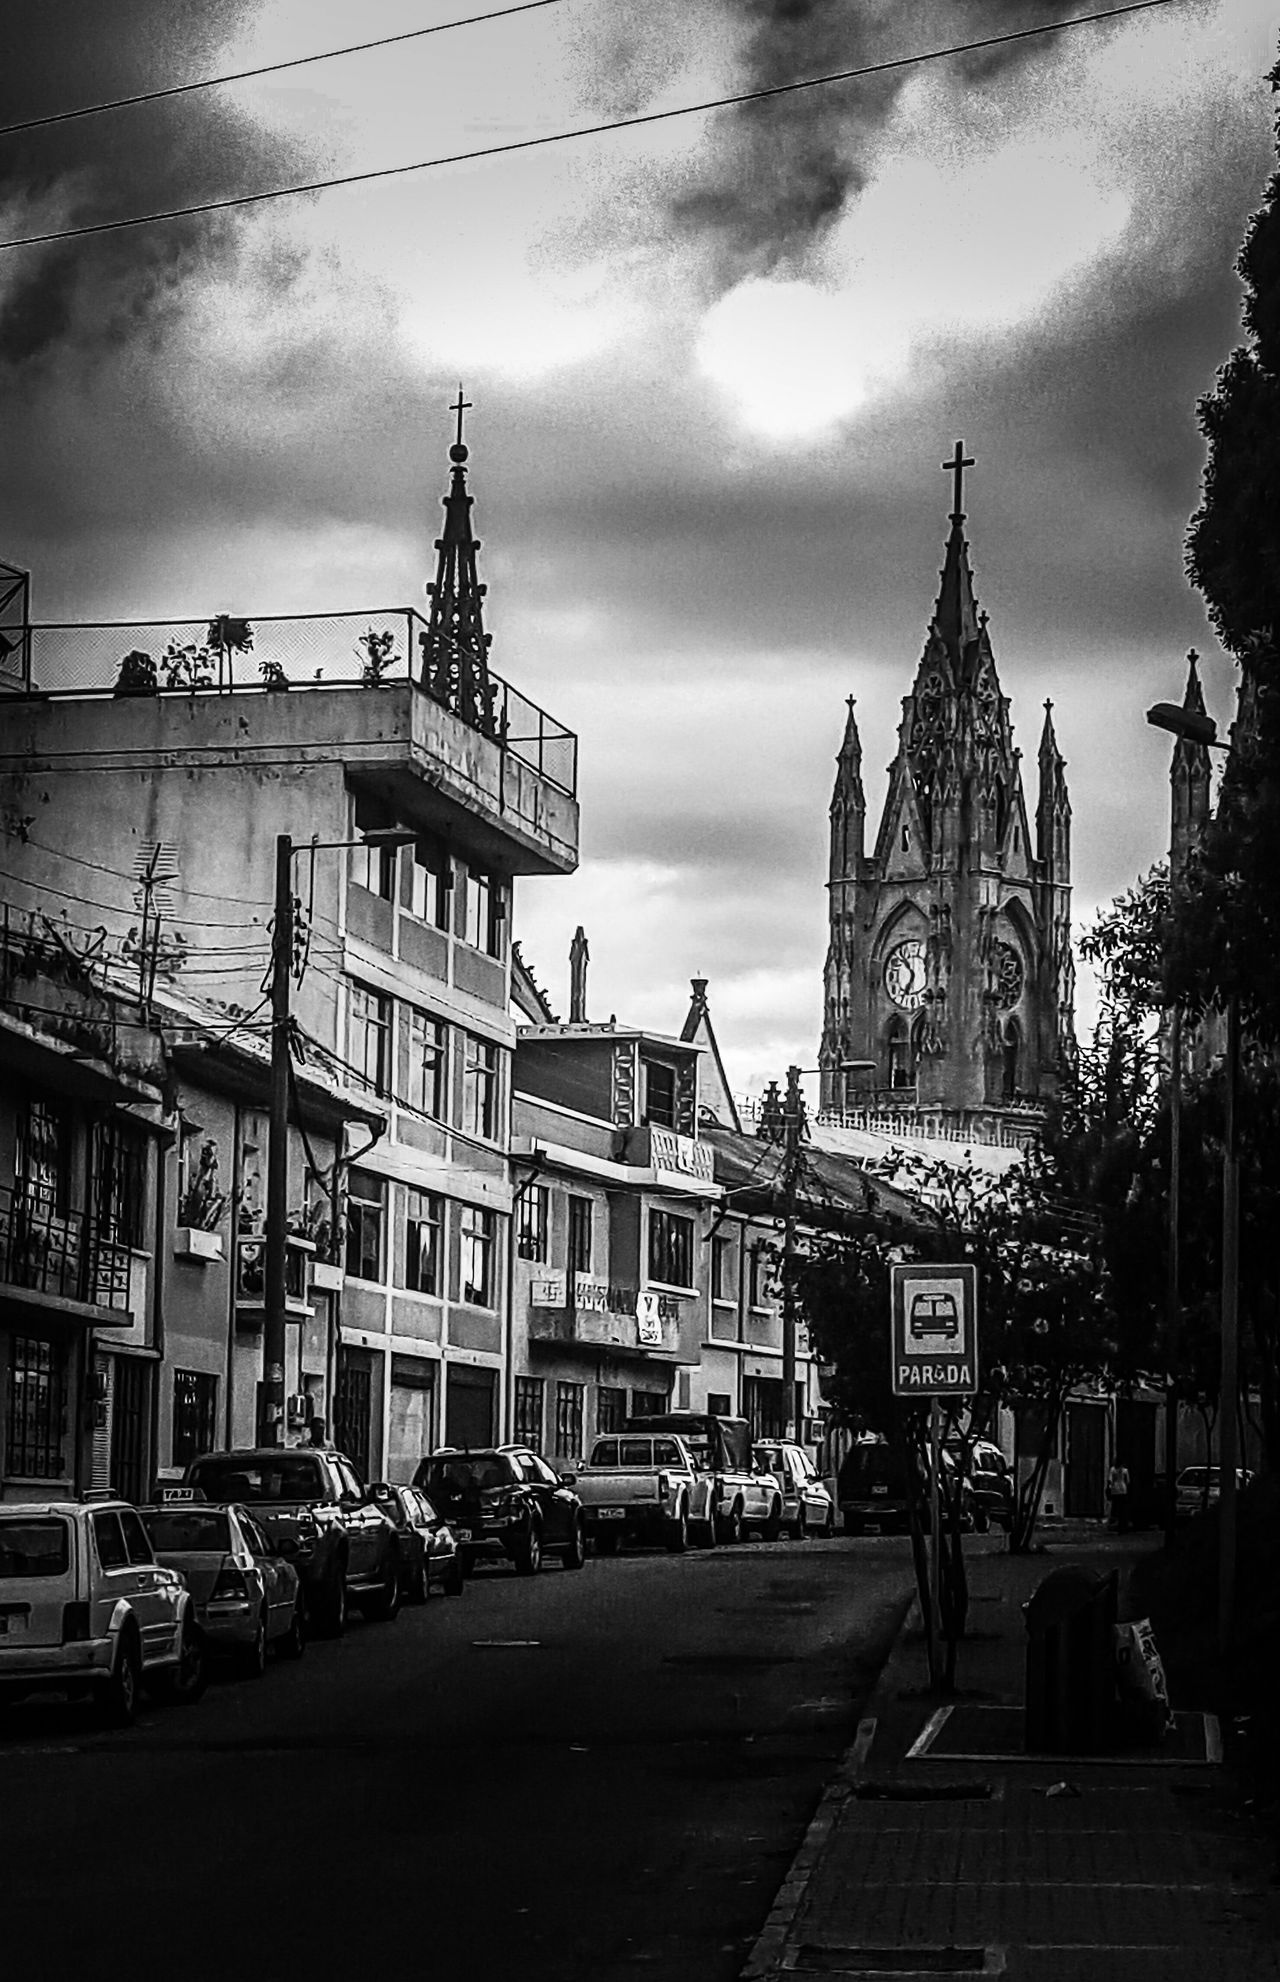 San Juan , Quito - Ecuador Cities QuitoEcuador Photowalk City View  Photooftheday Photographer Photography Quito City Quito Ecuador Ecuador♥ Darkness Darkness And Light Photo Gothic Beauty  Citytrip City Cathedral Walls Photo Of The Day Gothic Architecture Cathedral